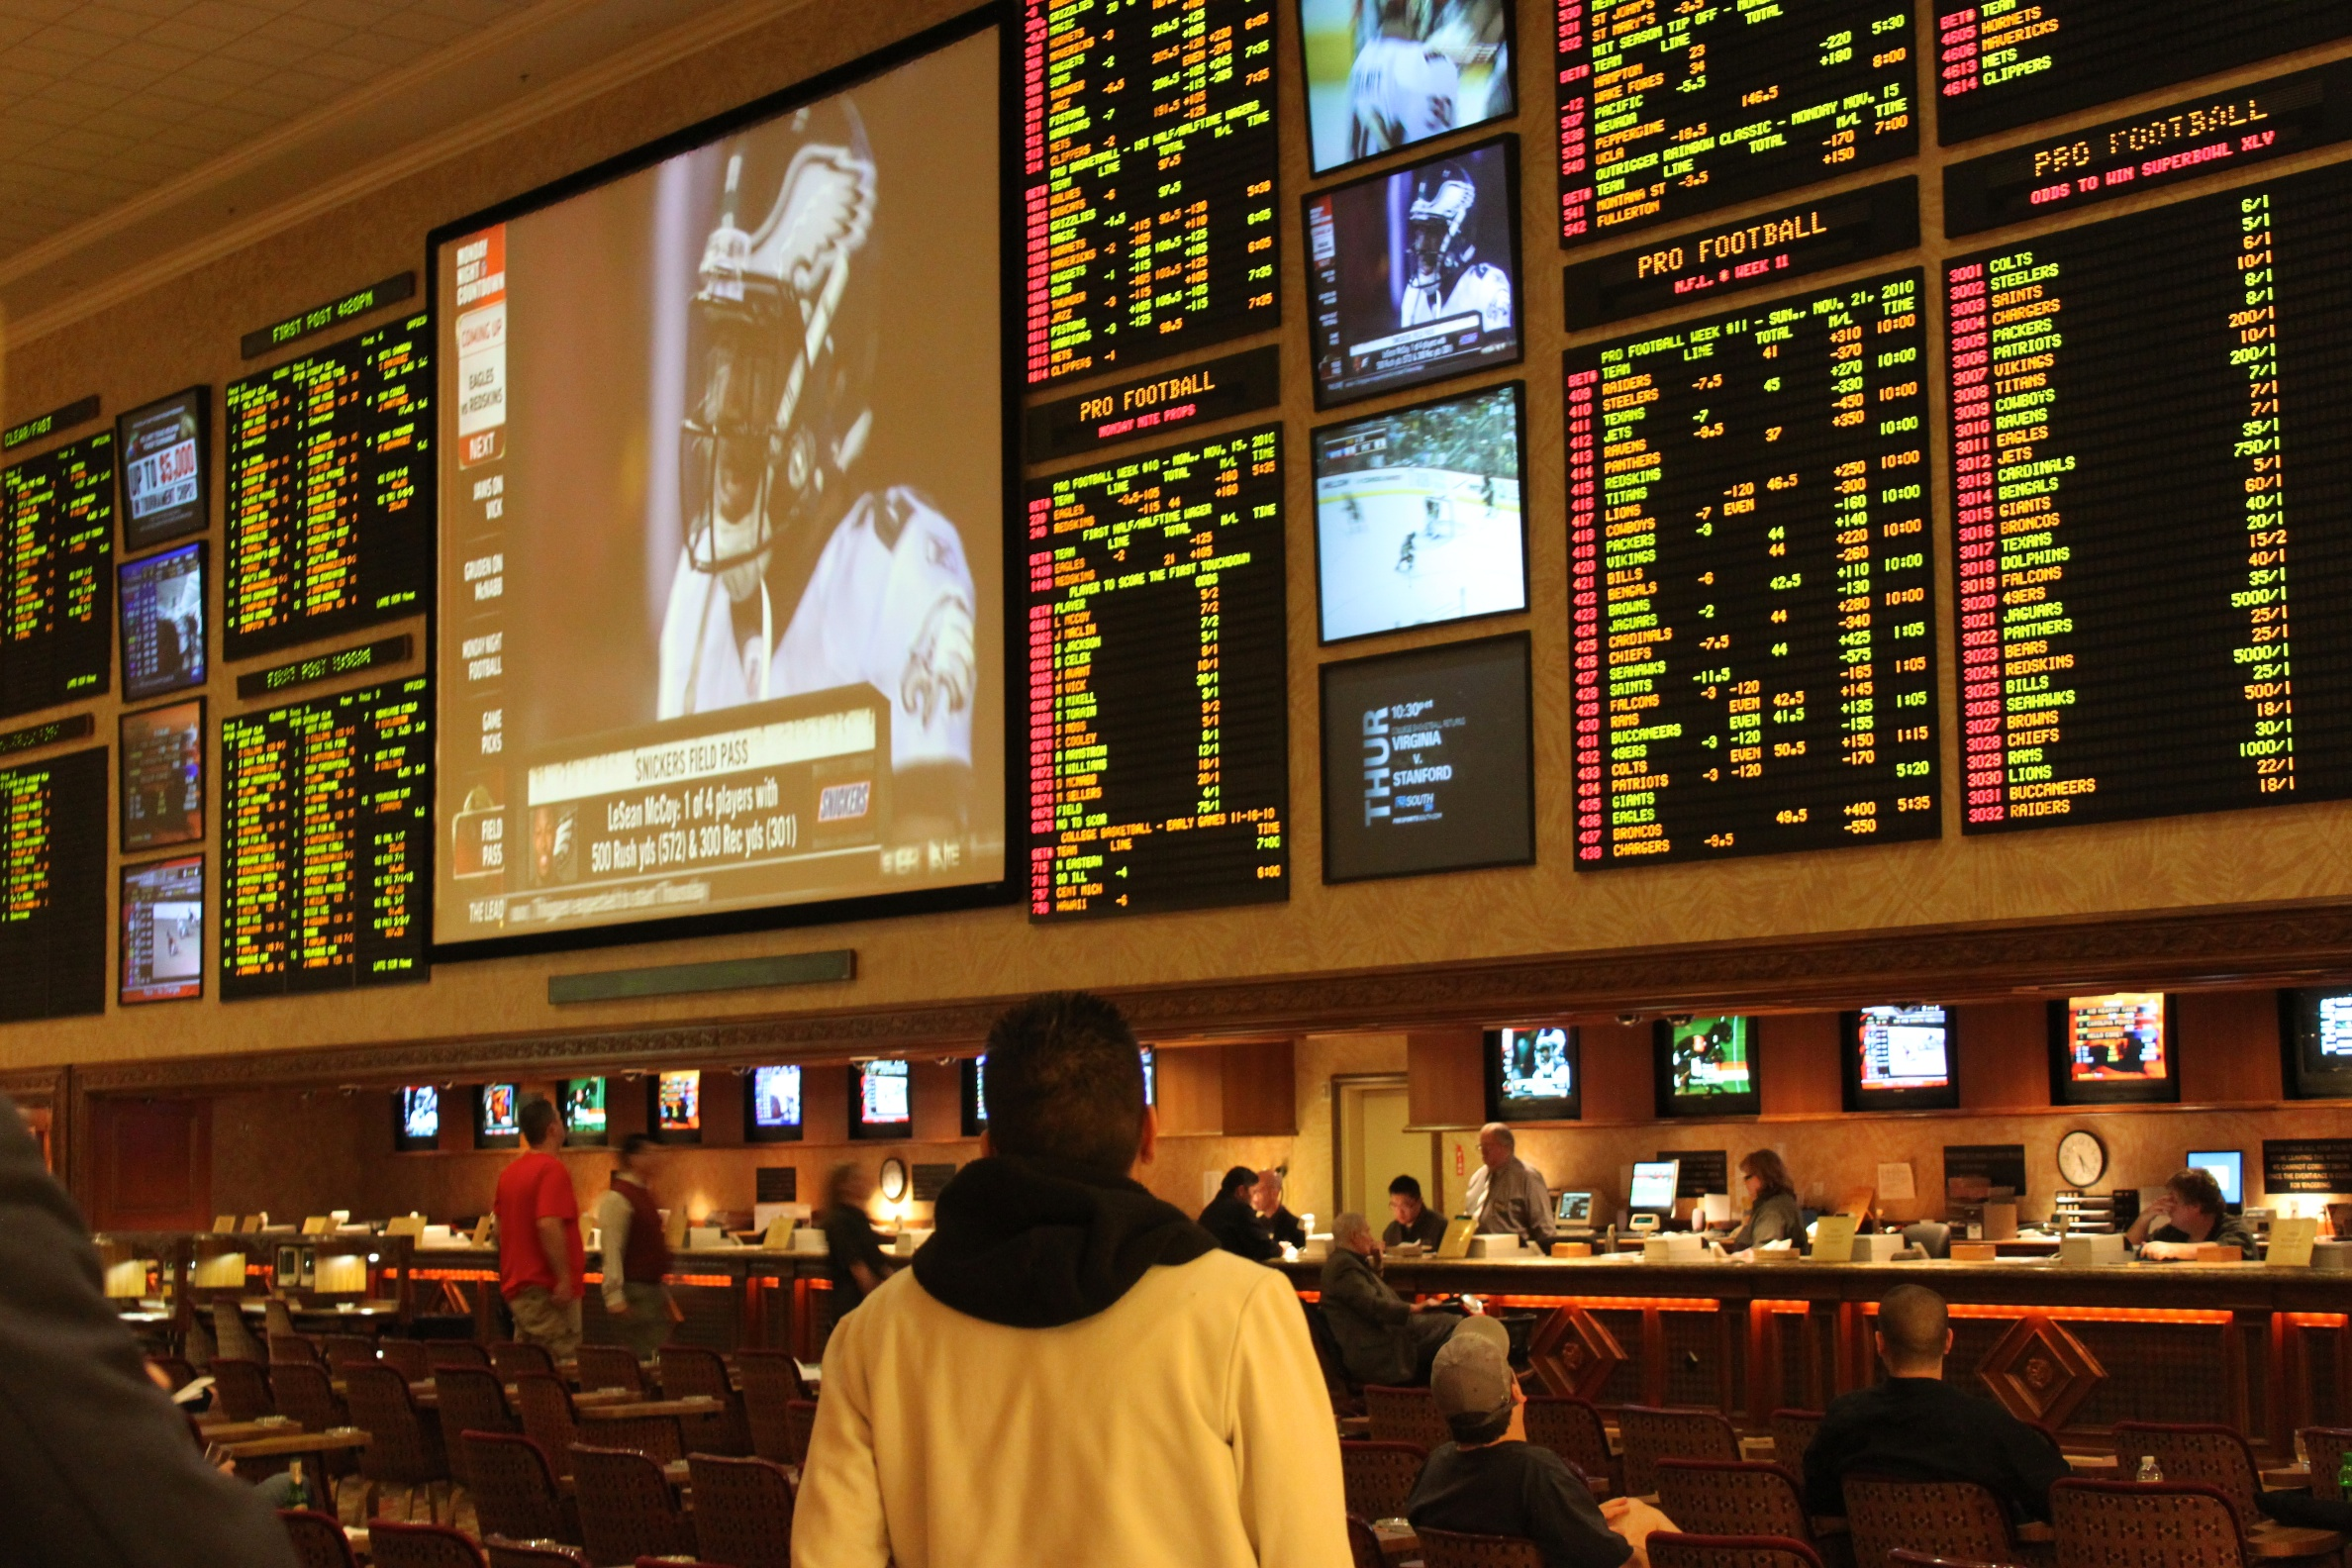 Sports betting meaning maryland vs florida state betting line